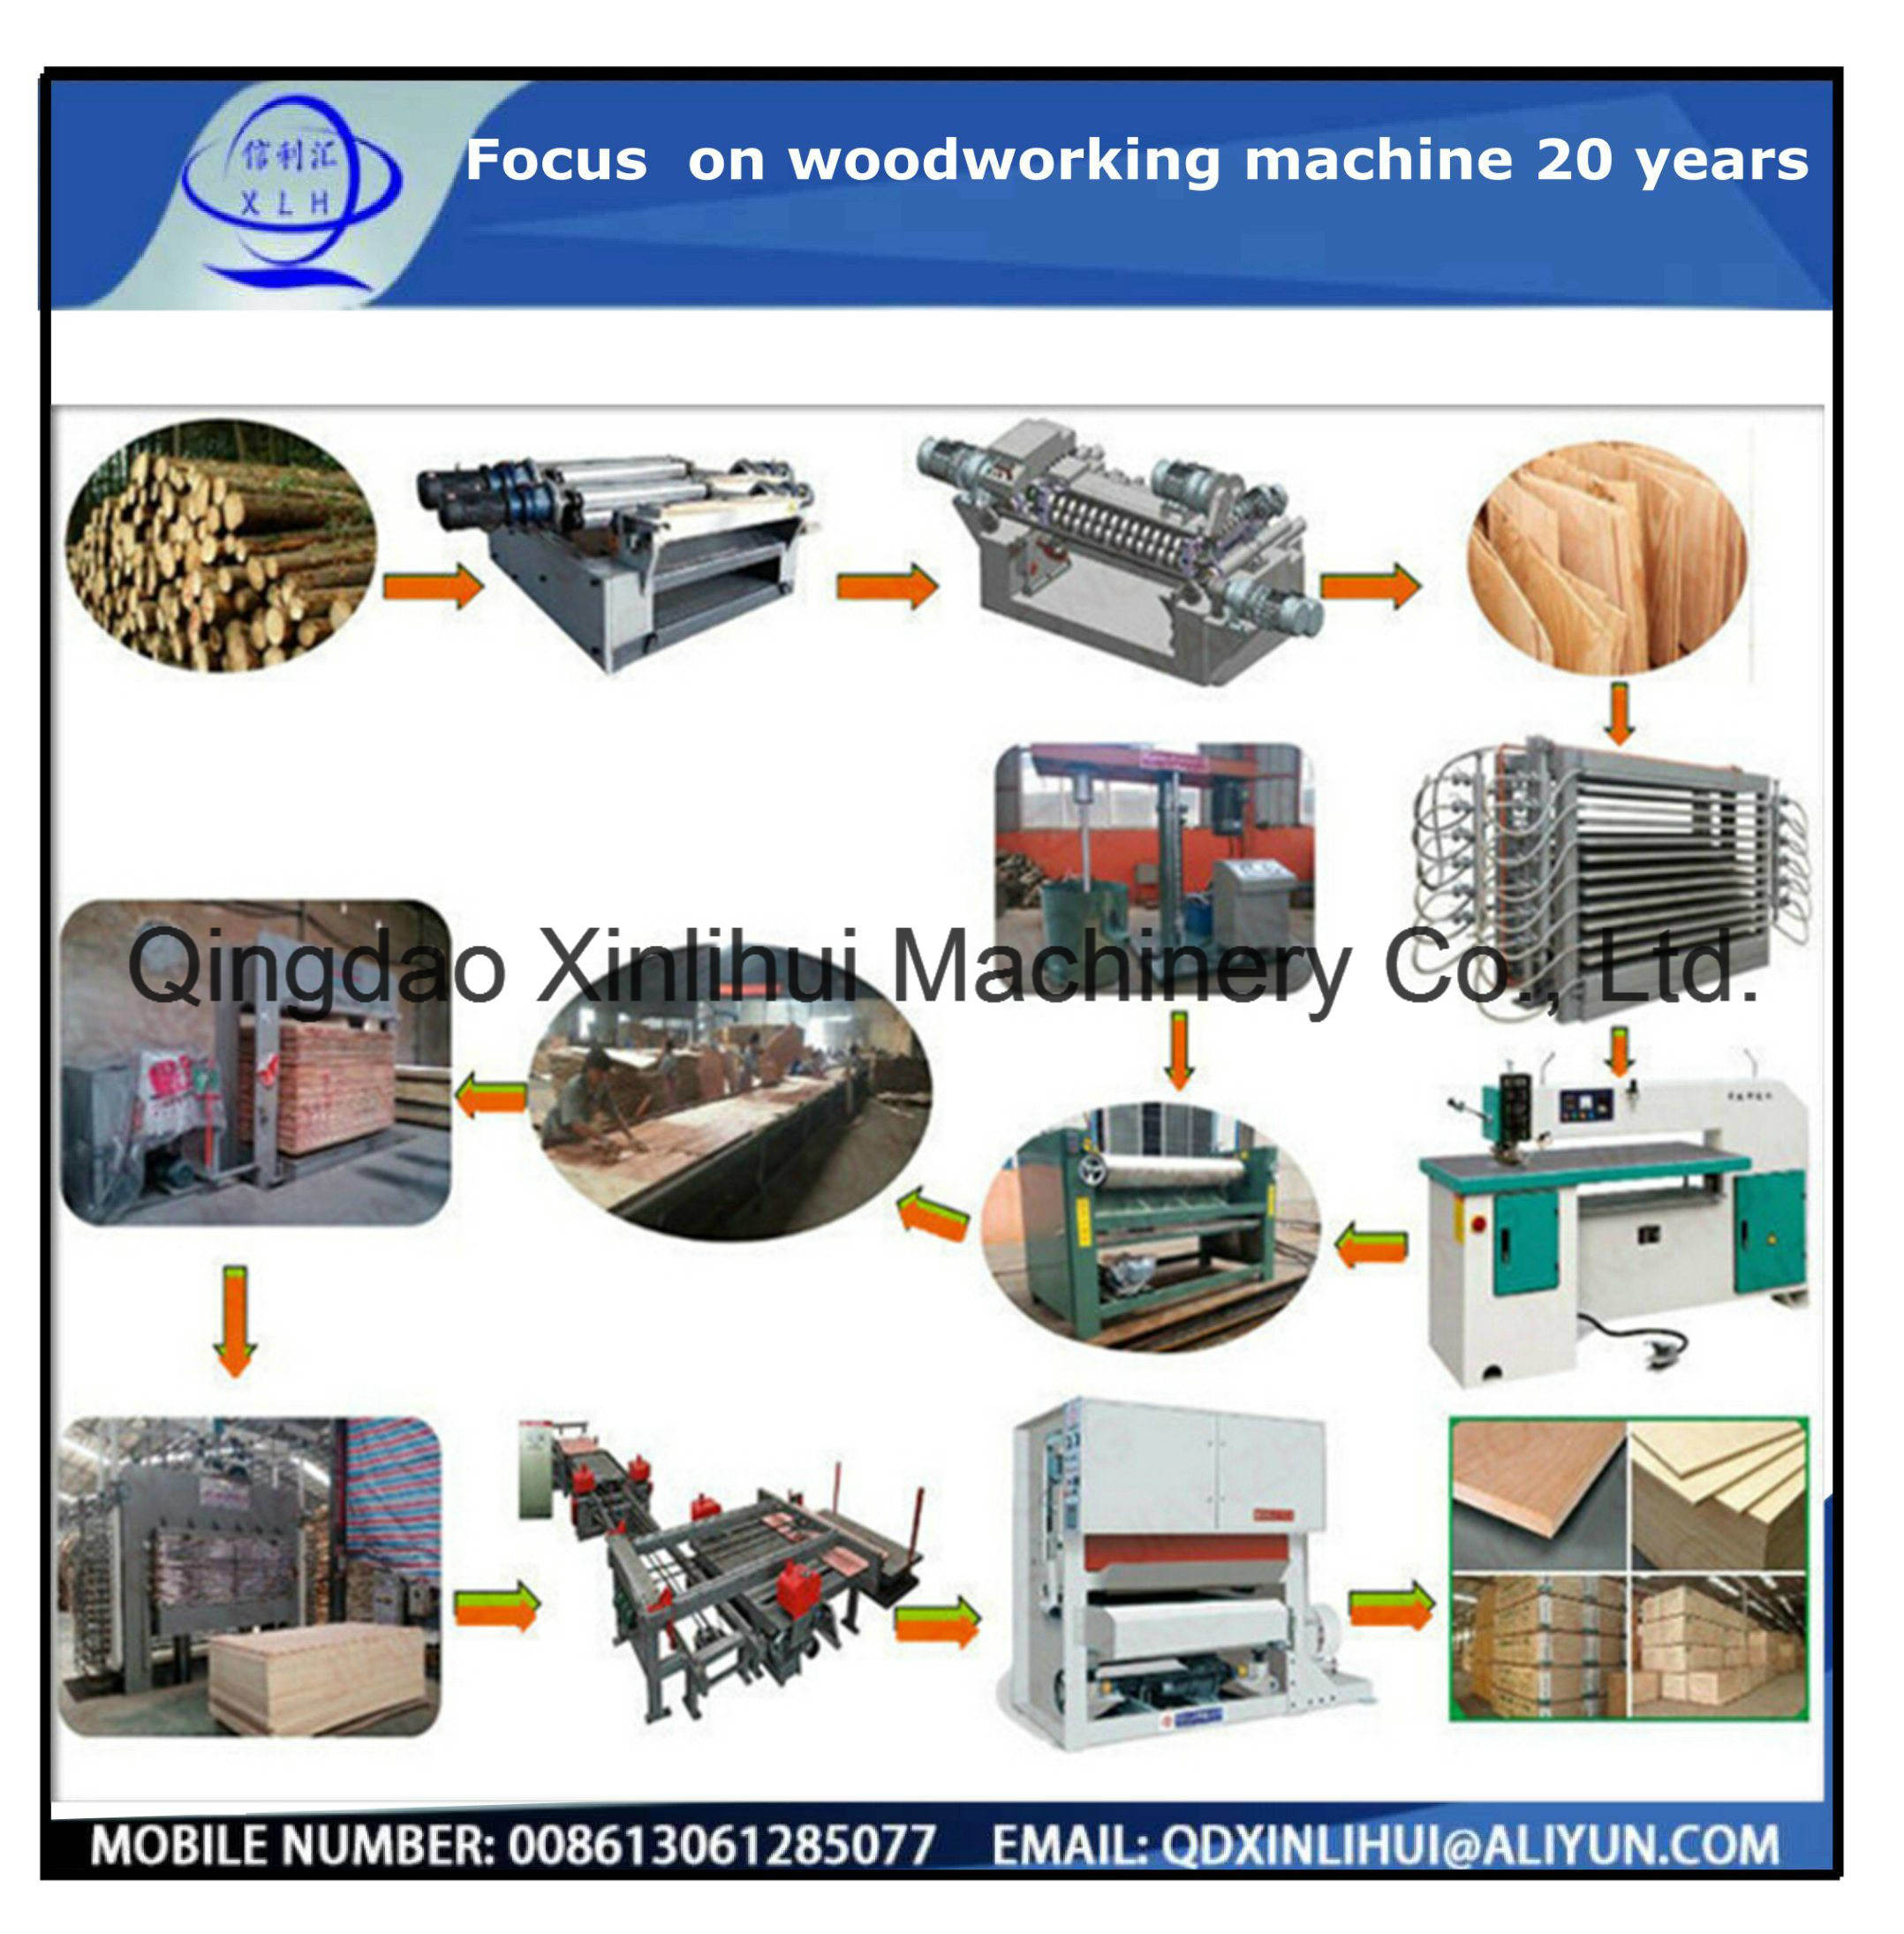 Production manufacture woodworking equipment